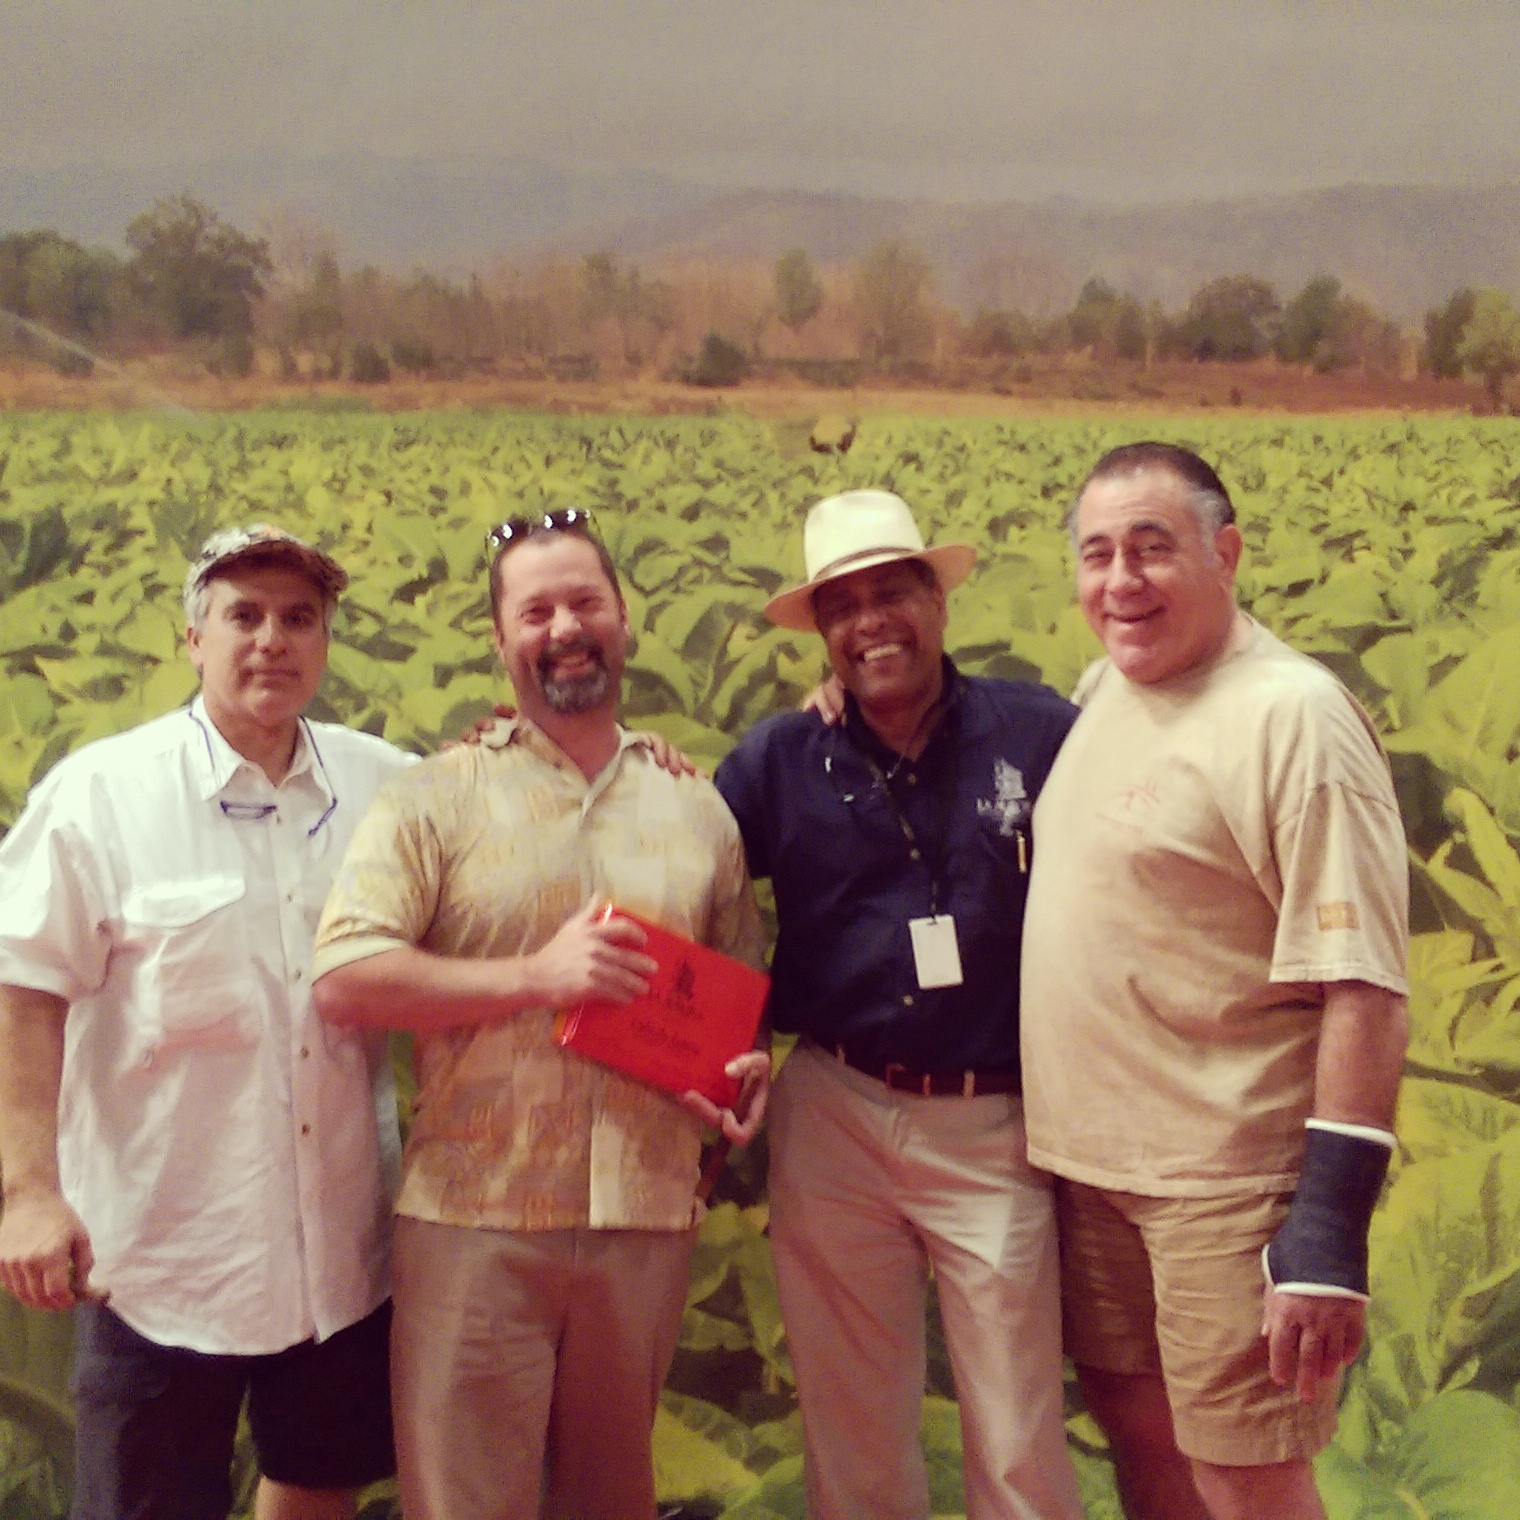 TESTING BLENDS IN THE FIELDS OF THE DOMINICAN REPUBLIC